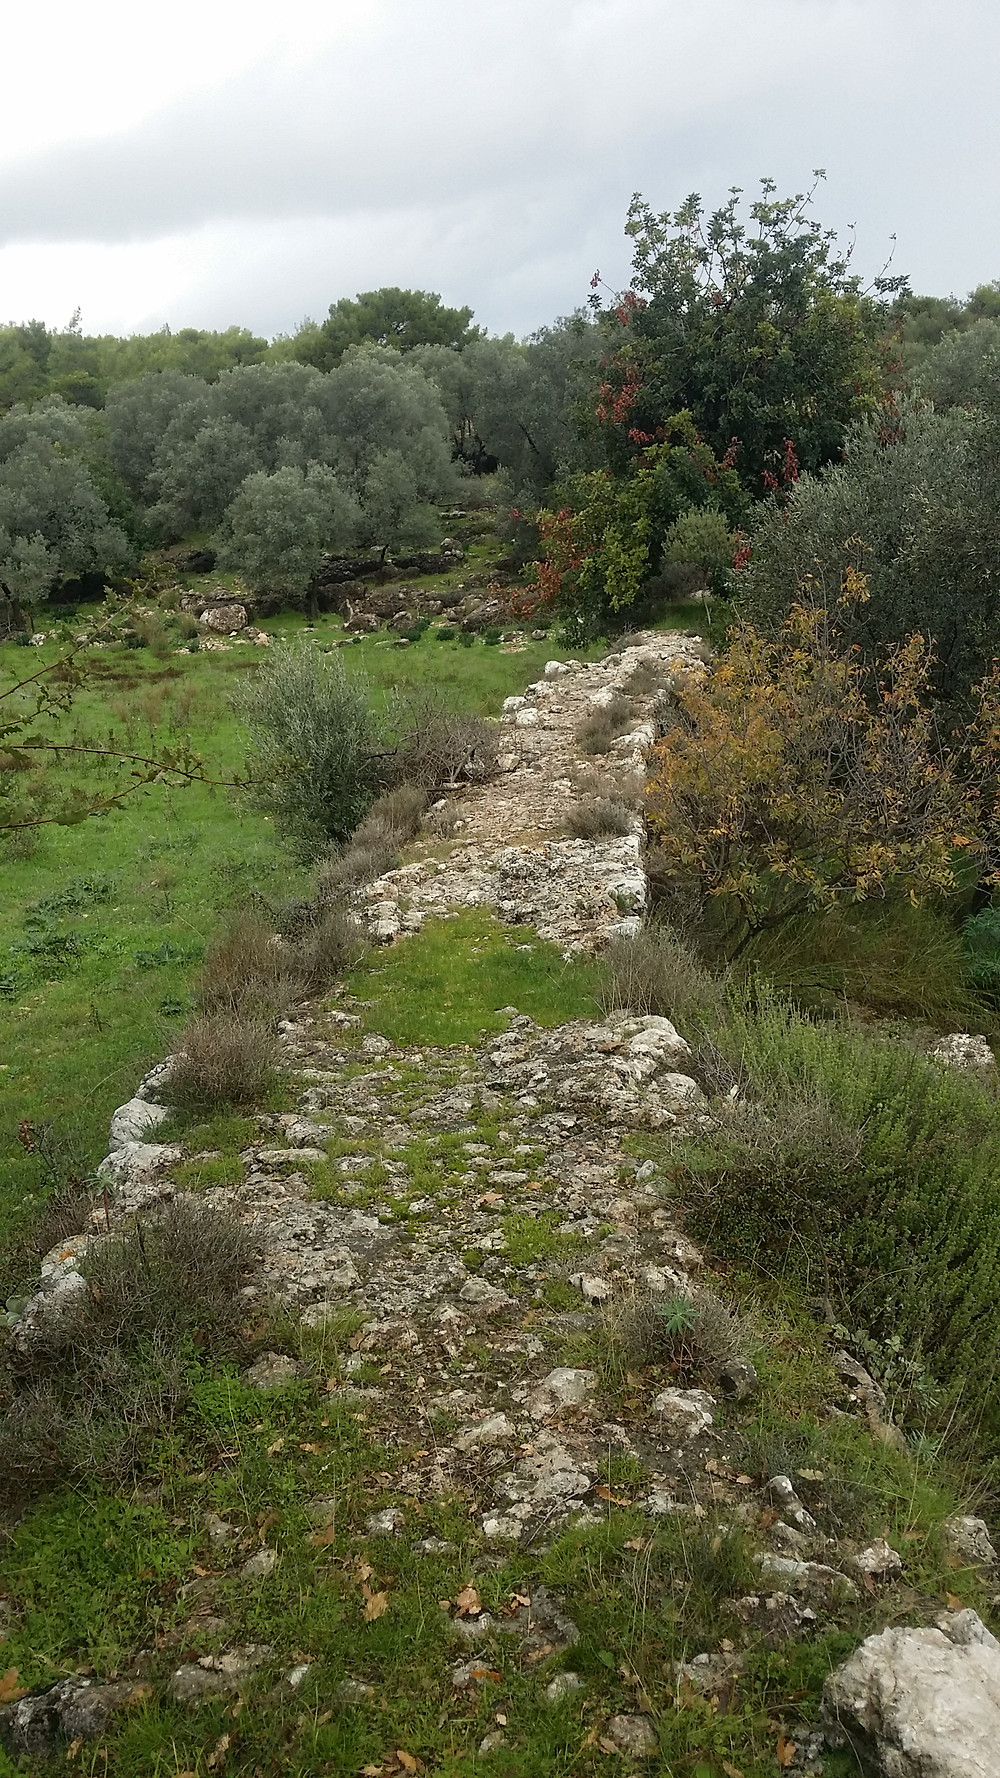 The other Patara aqueduct that is not followed by the Lycian way